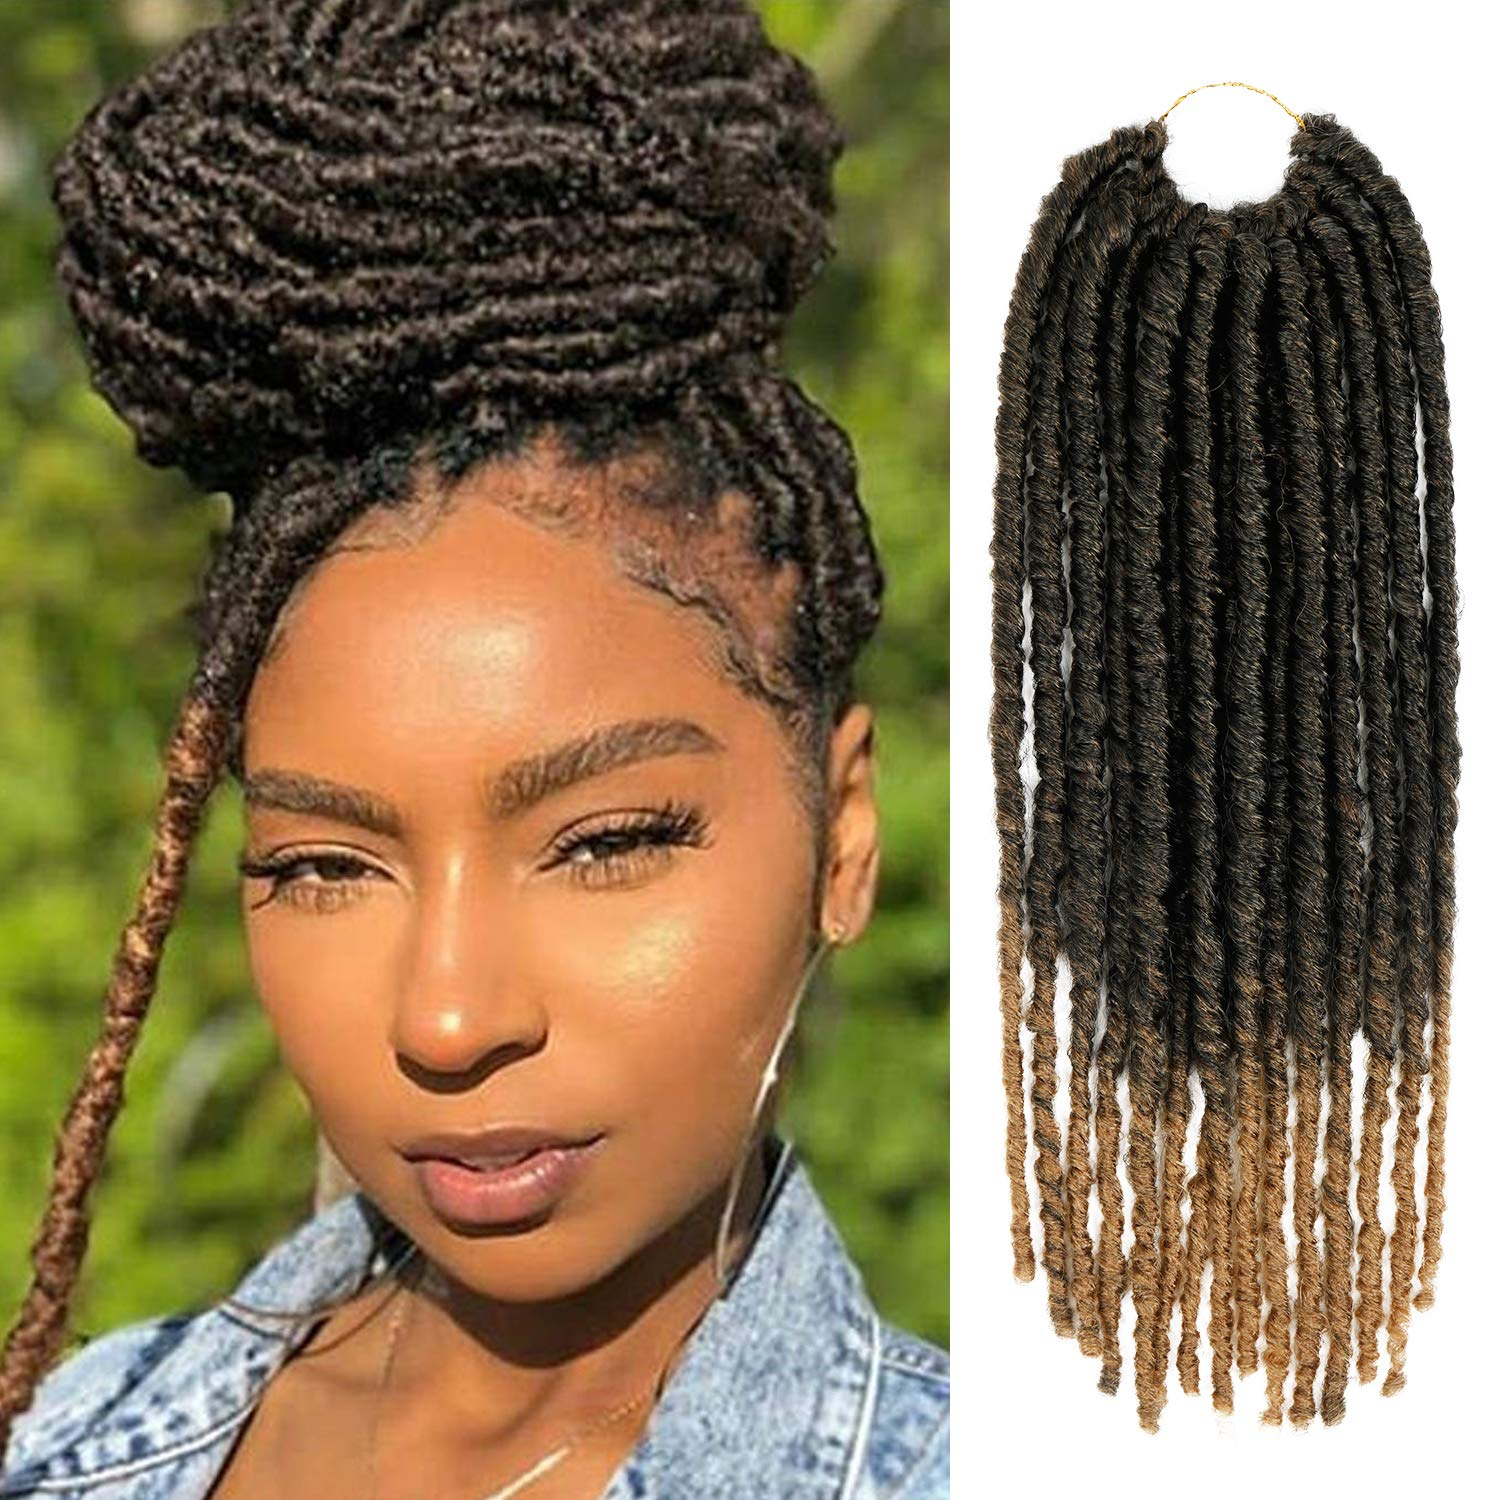 18 Inch AU-THEN-TIC Faux Locs Crochet Braid Challenge the All stores are sold lowest price Lock Brai Hair Dread